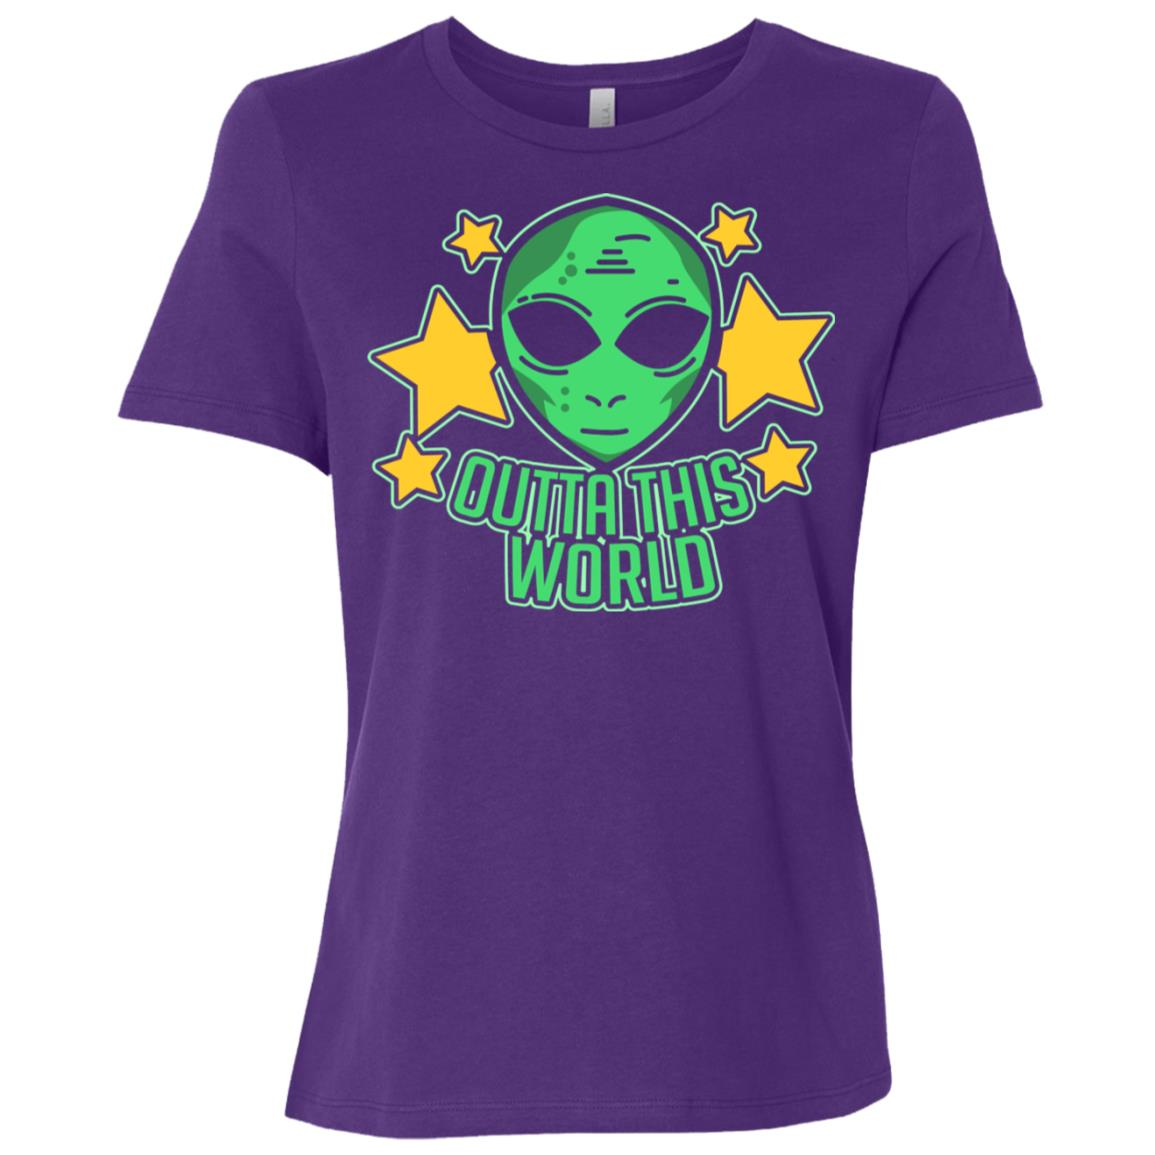 Space Alien Ls Outta This World Funny Cute Gift Tee Women Short Sleeve T-Shirt